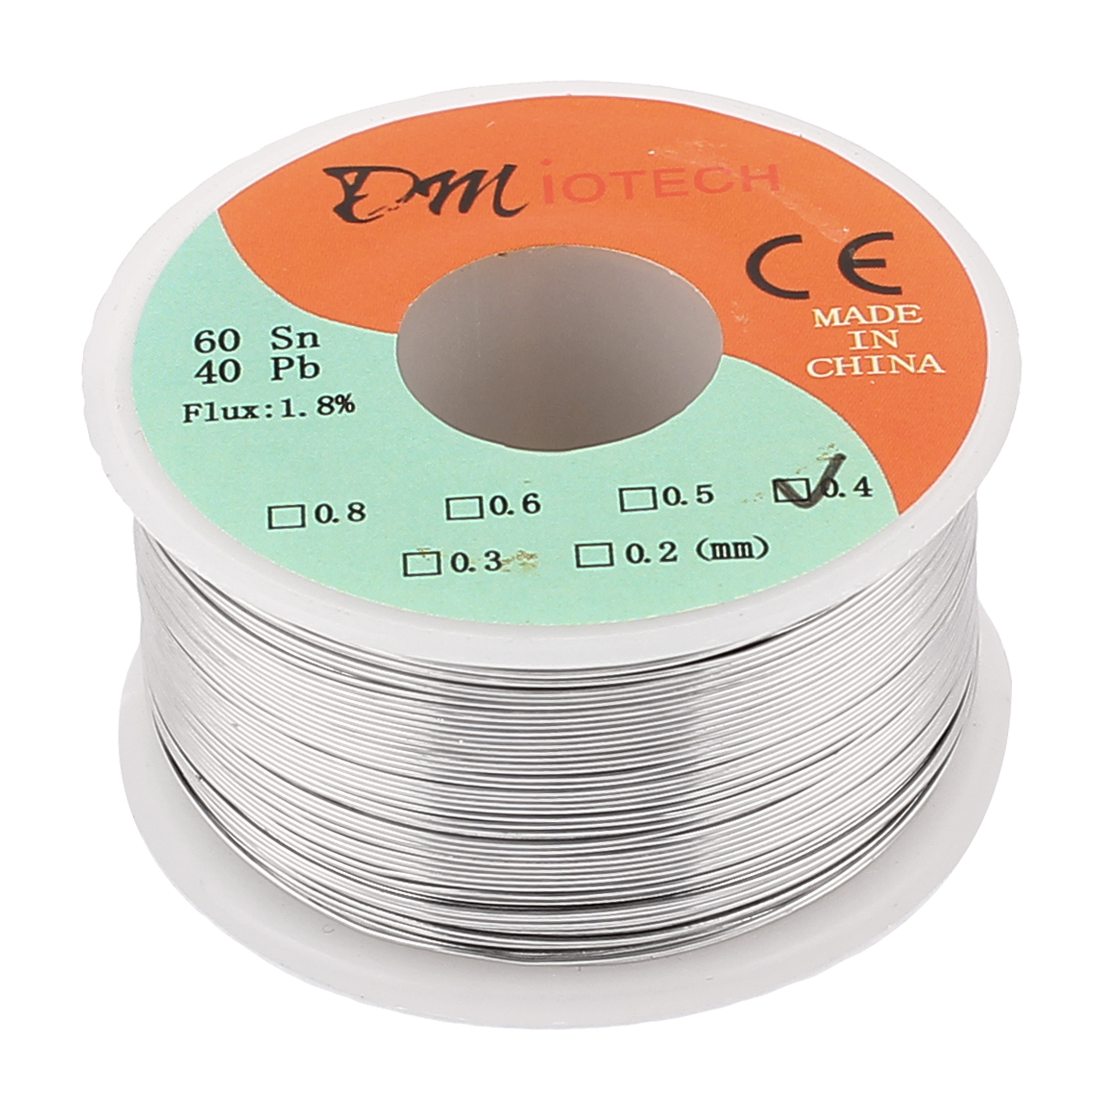 0.4mm Rosin Core Solder Tin Lead Solder Wire 60/40 for Electrical Soldering 150g